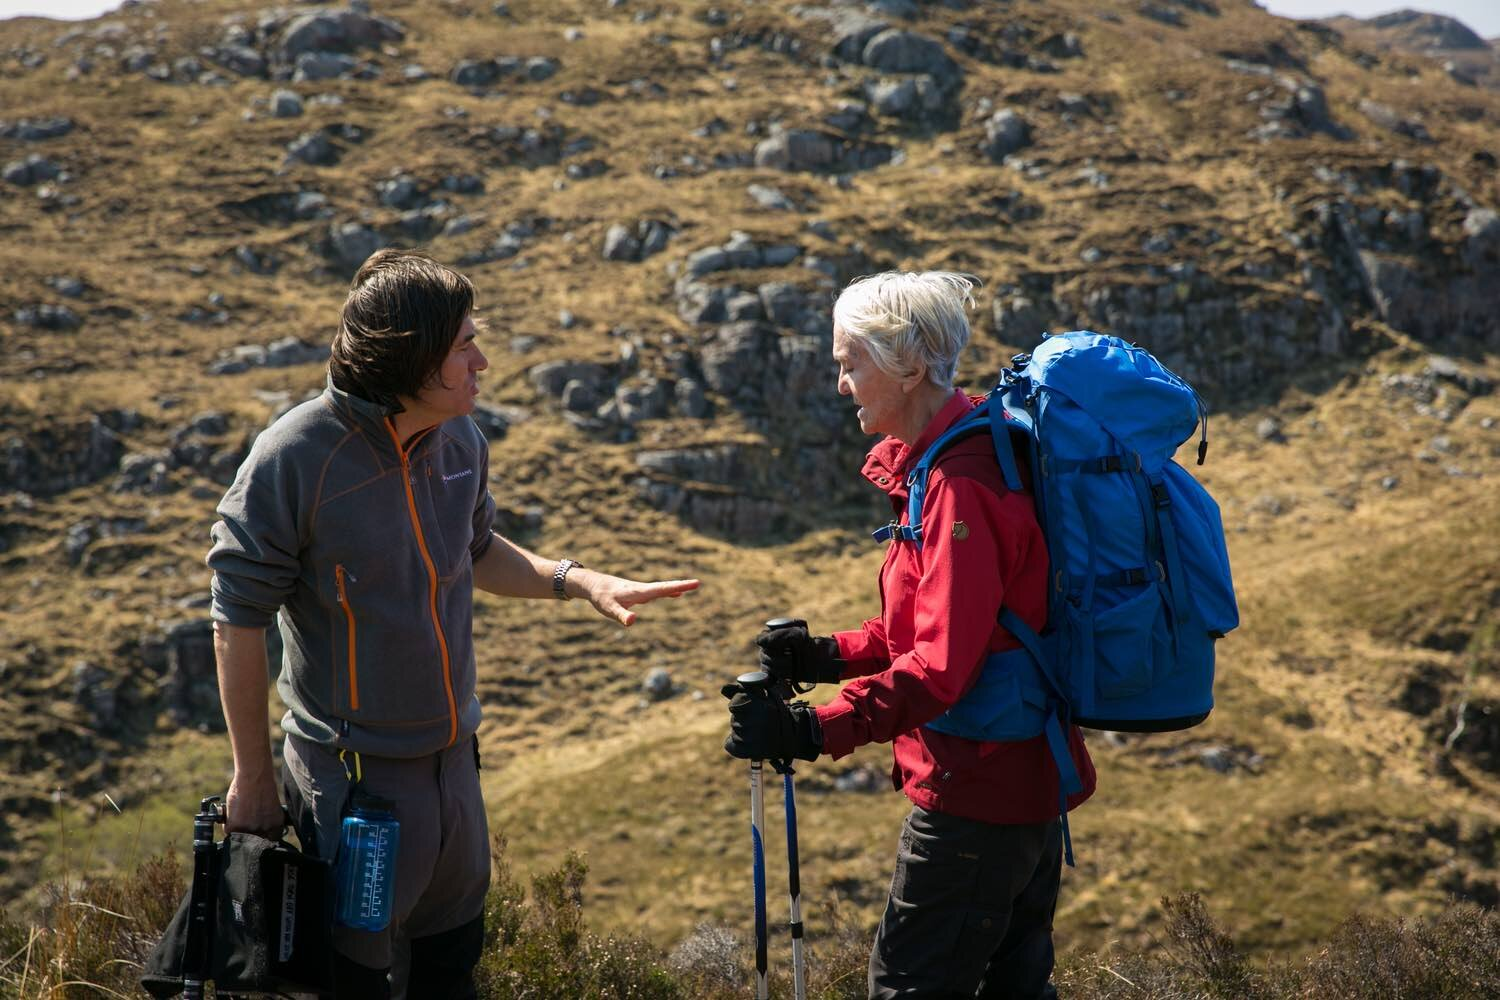 Simon discussing a sequence with Sheila Hancock. Sheila is setting out on her journey towards the mountain.